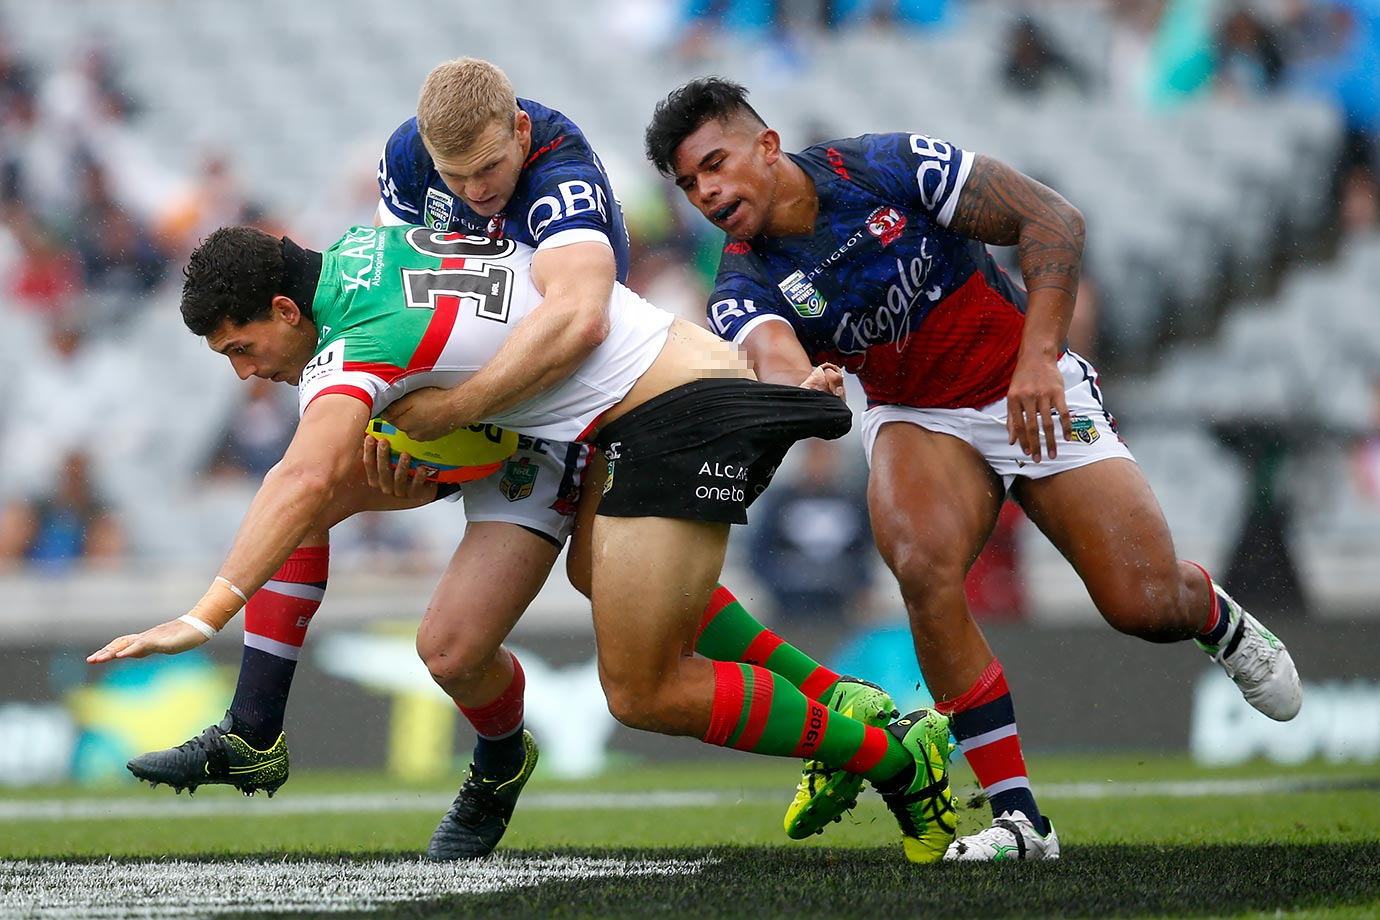 Kyle Turner is tackled during the 2016 Auckland Nines match between the Rabbitohs and the Roosters at Eden Park in Auckland, New Zealand.